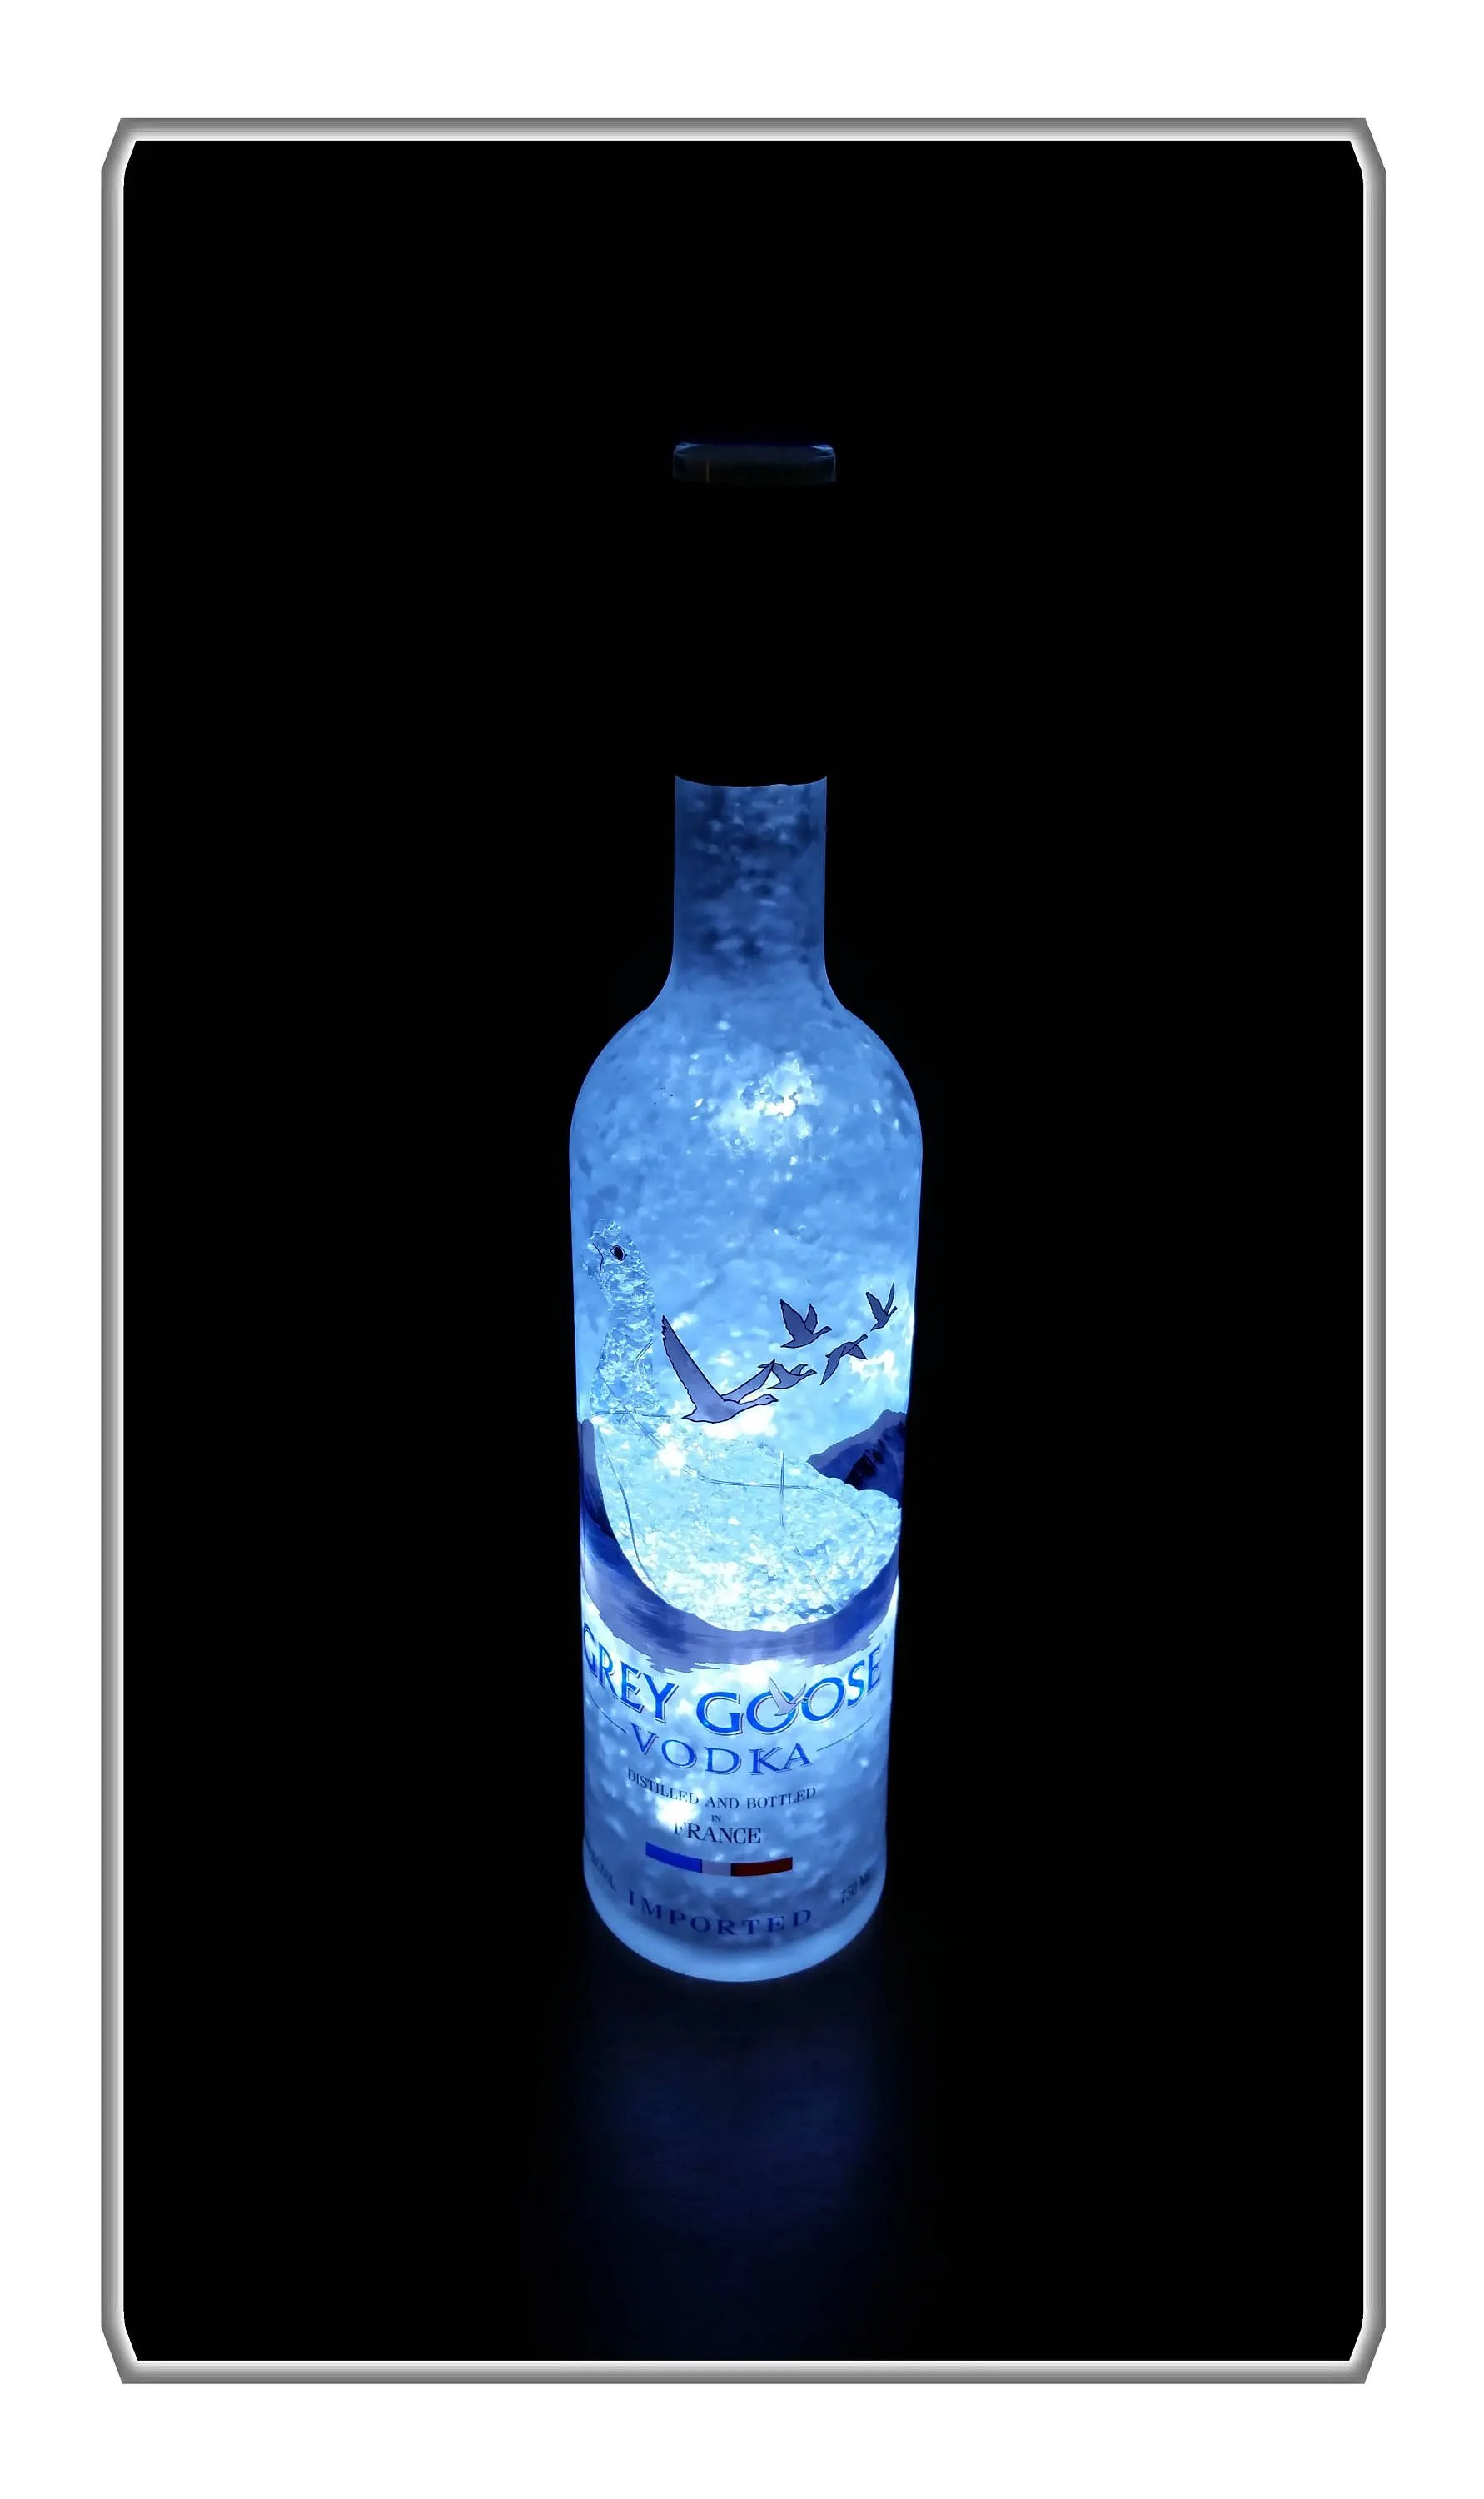 Chambre Complete Led Grey Goose Lemelon Brand Vodka Led Bottle Lamp 50 Hrs On One Battery Pack Perfect Forweddings Bar Lounge Home Decor Club